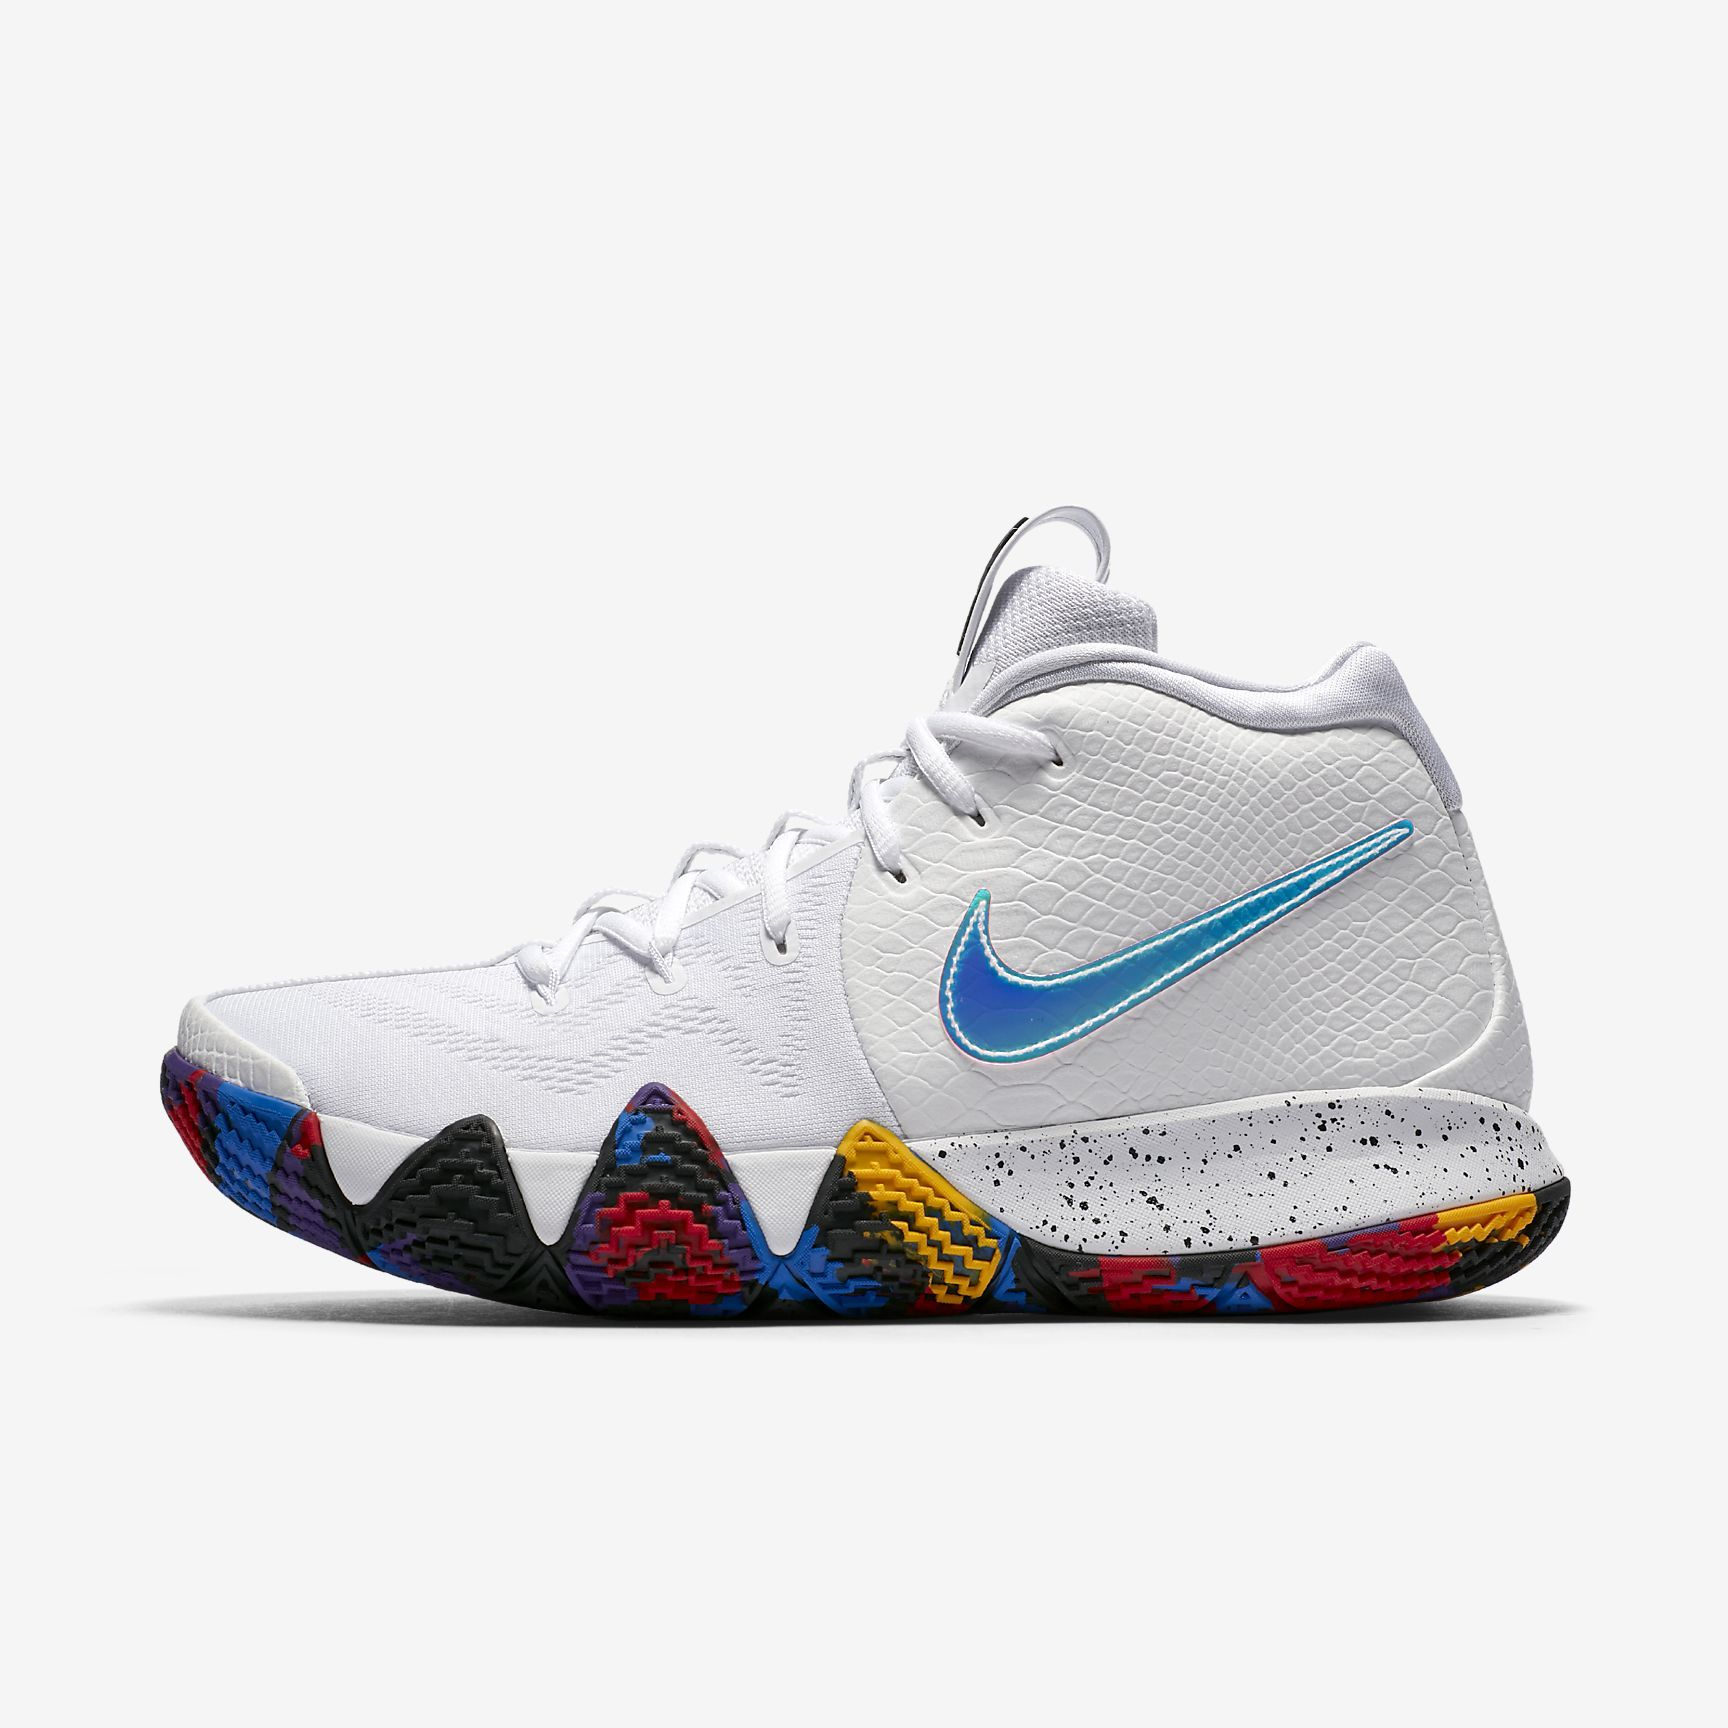 premium selection 40d5b 2faf9 Kyrie 4 The Moment Basketball Shoe